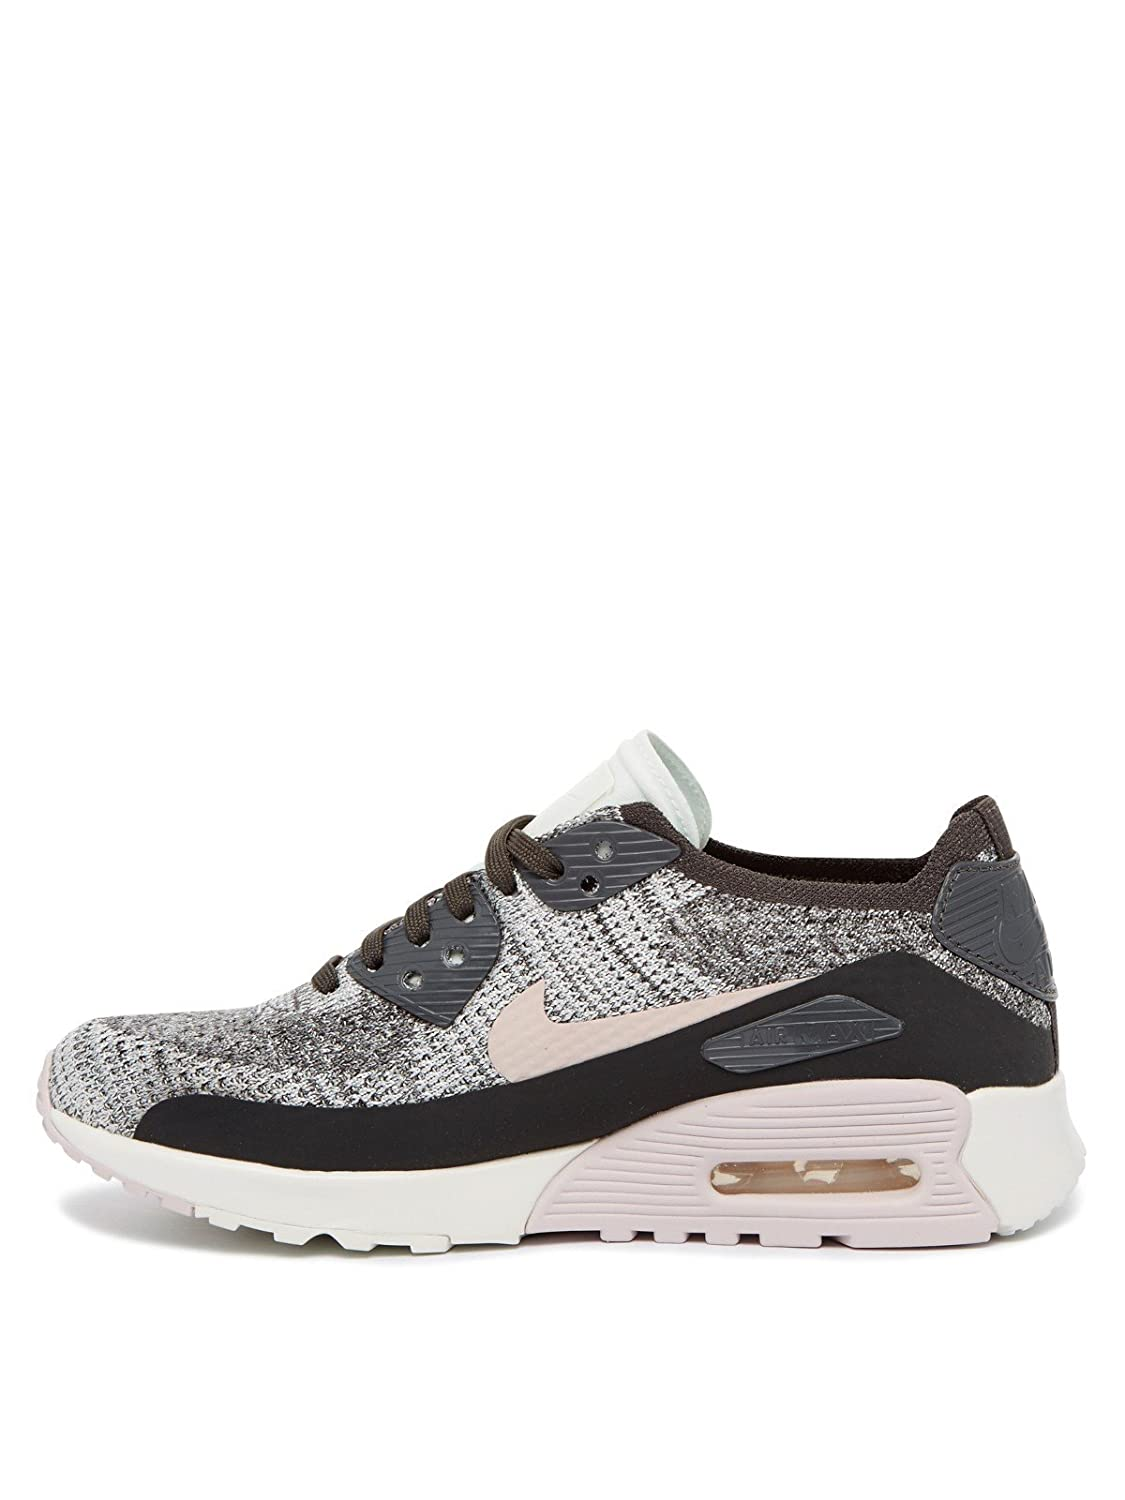 3a110354039 Nike Women s W Air Max 90 Ultra 2.0 Flyknit